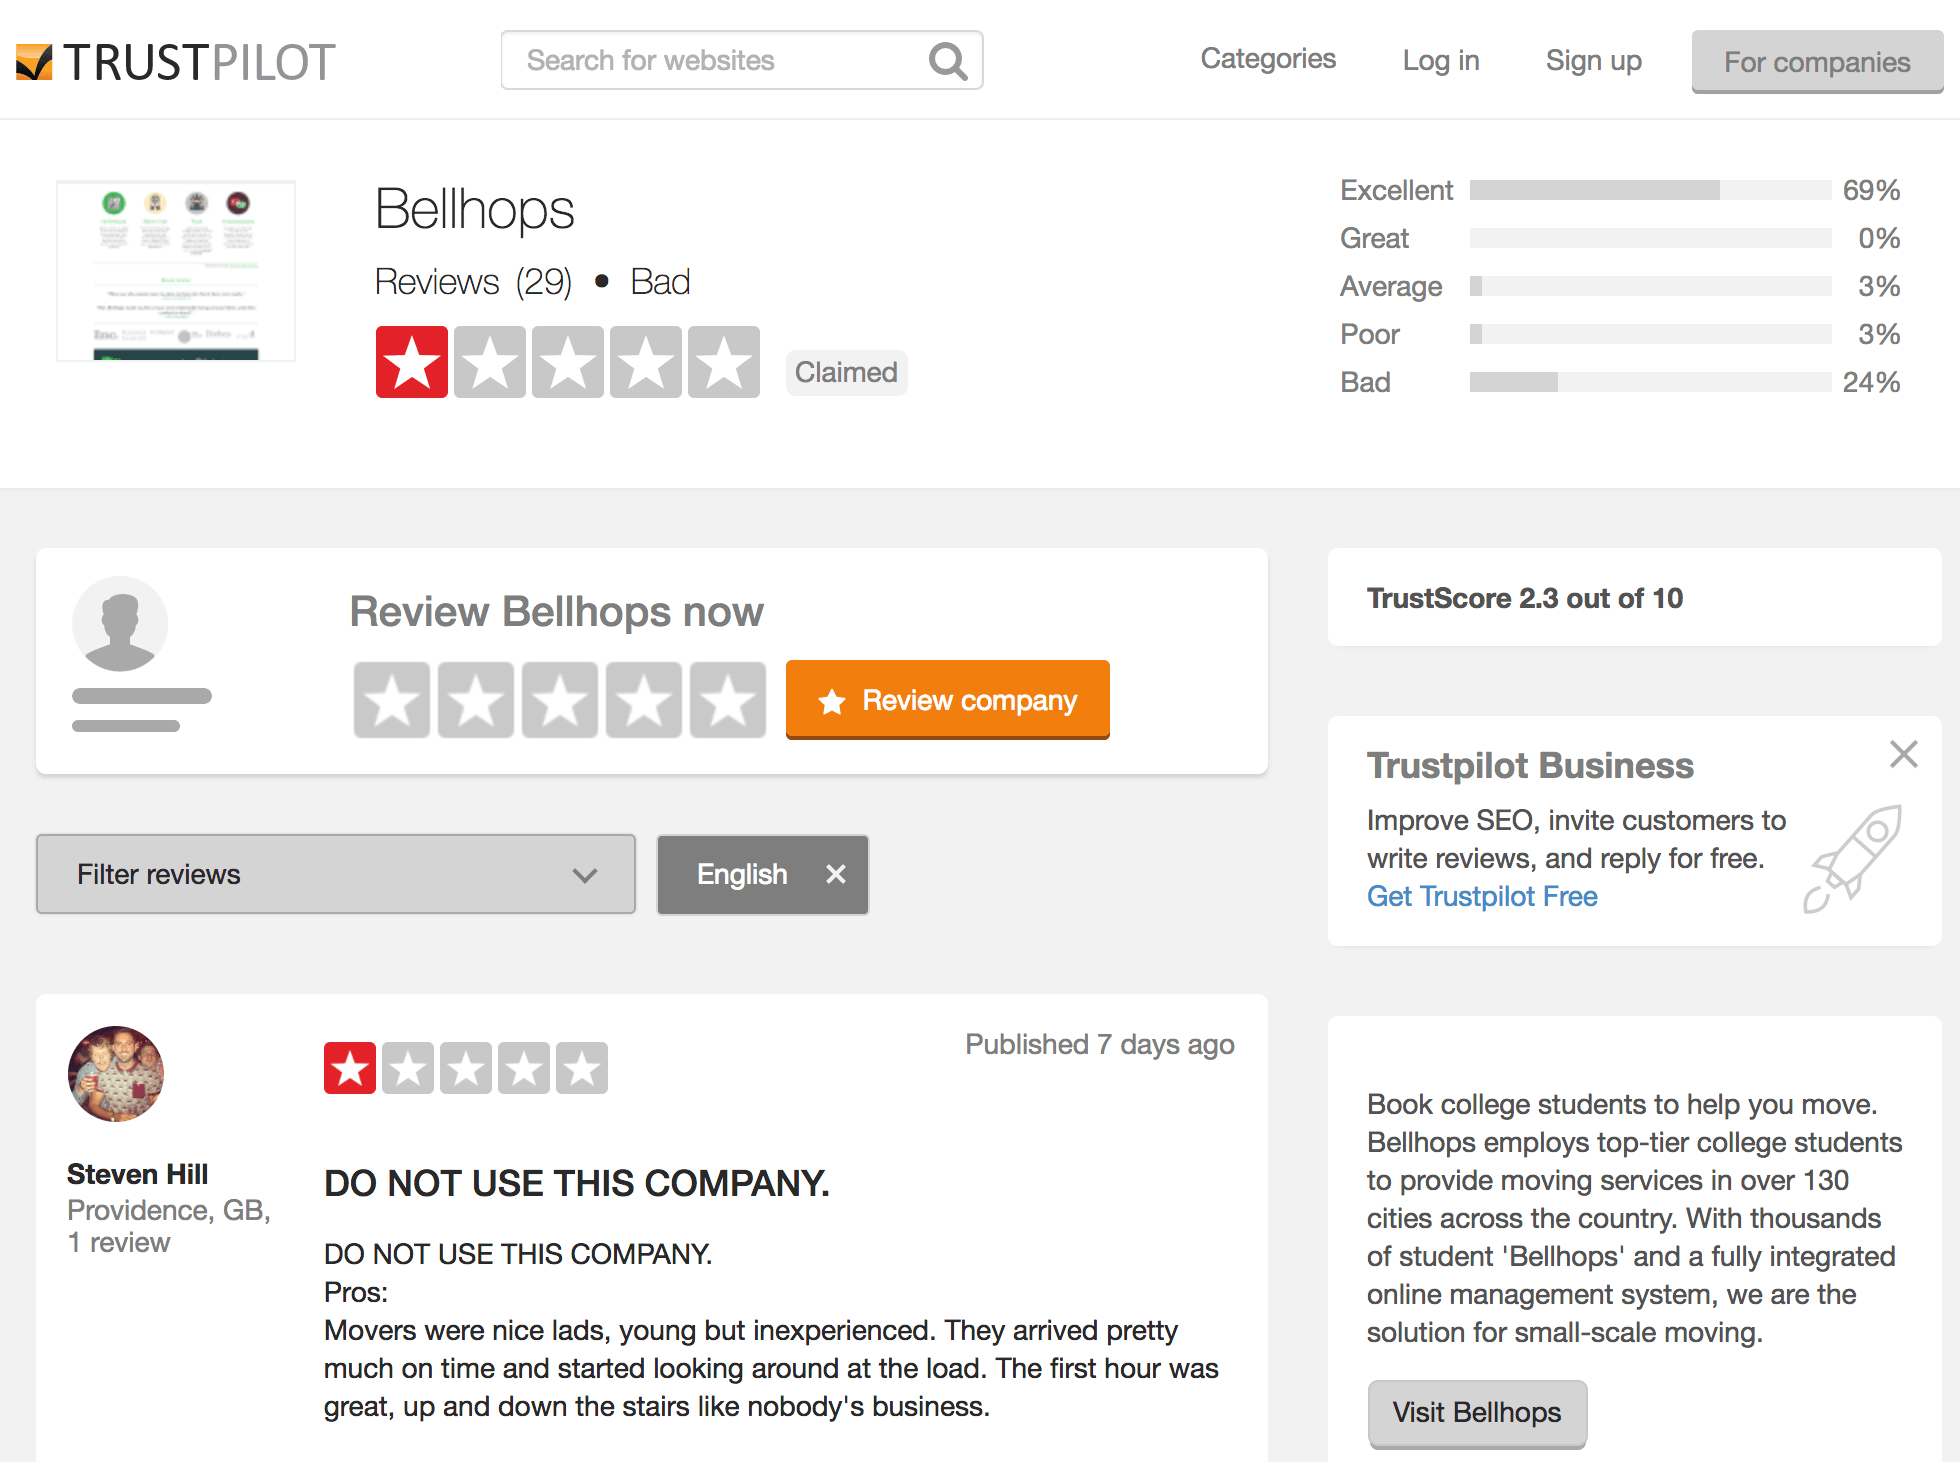 How to deal with low reviews on Trustpilot